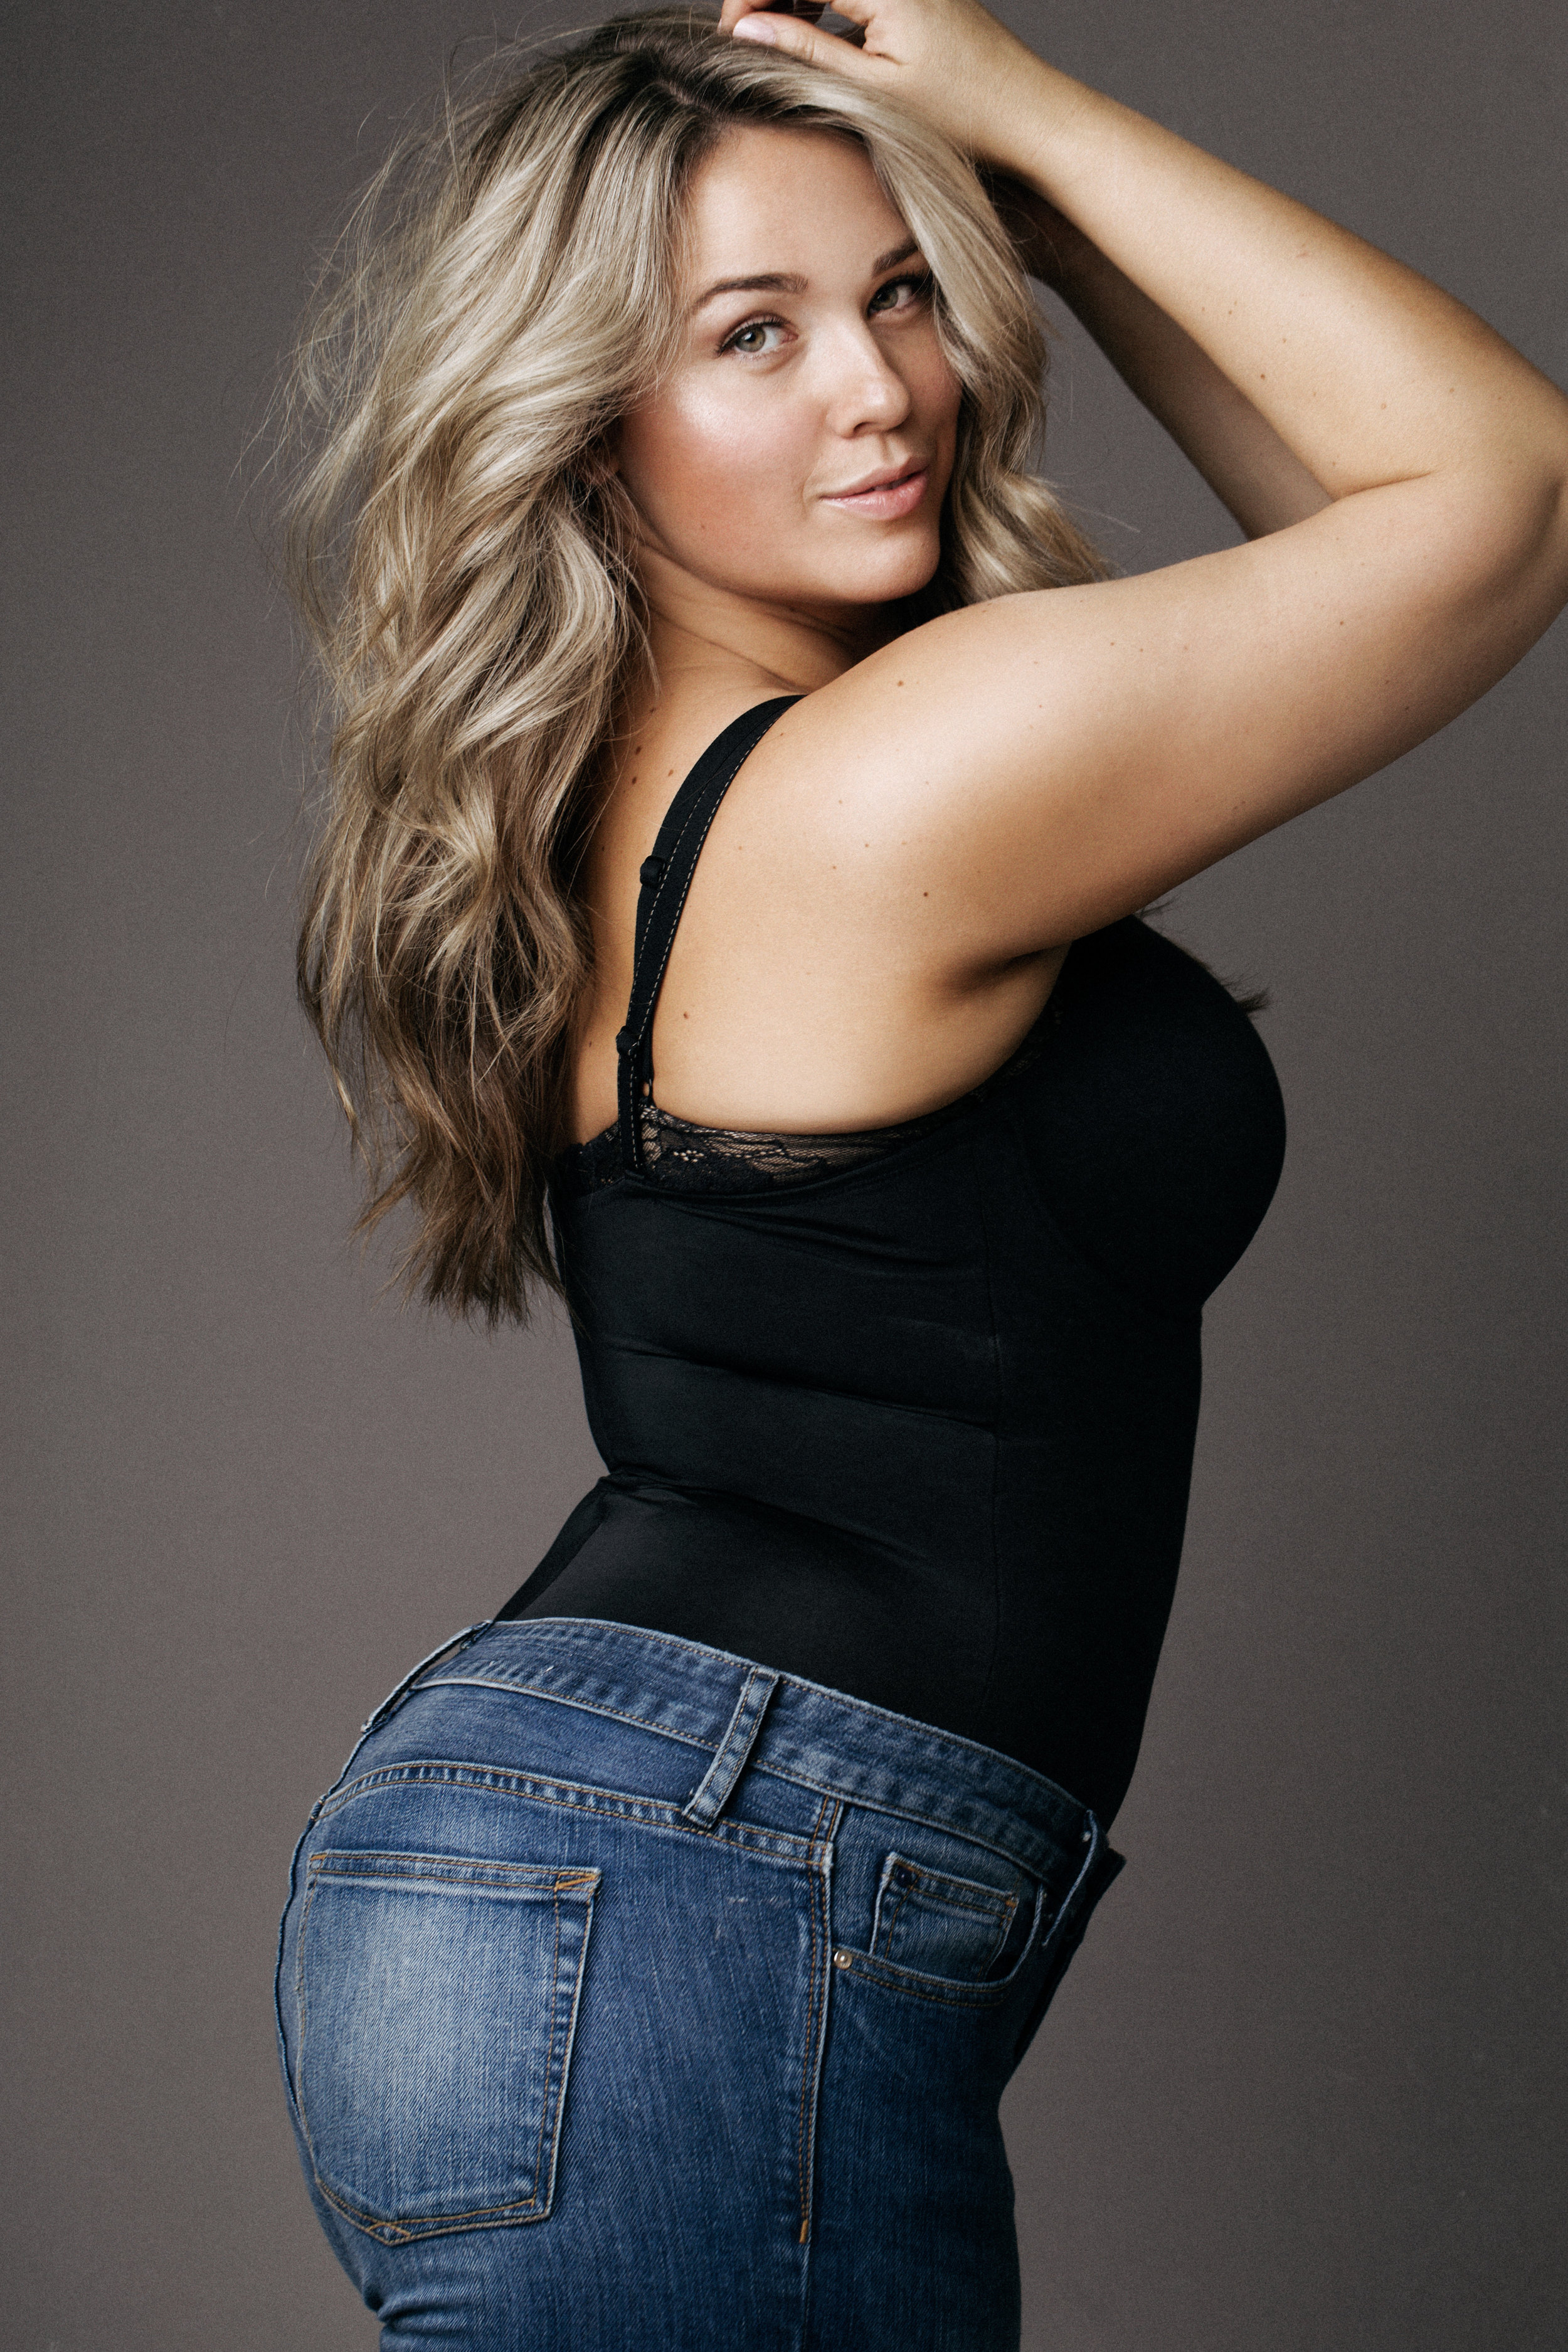 nyc-photographers-plus-size-model-test-10010.jpg